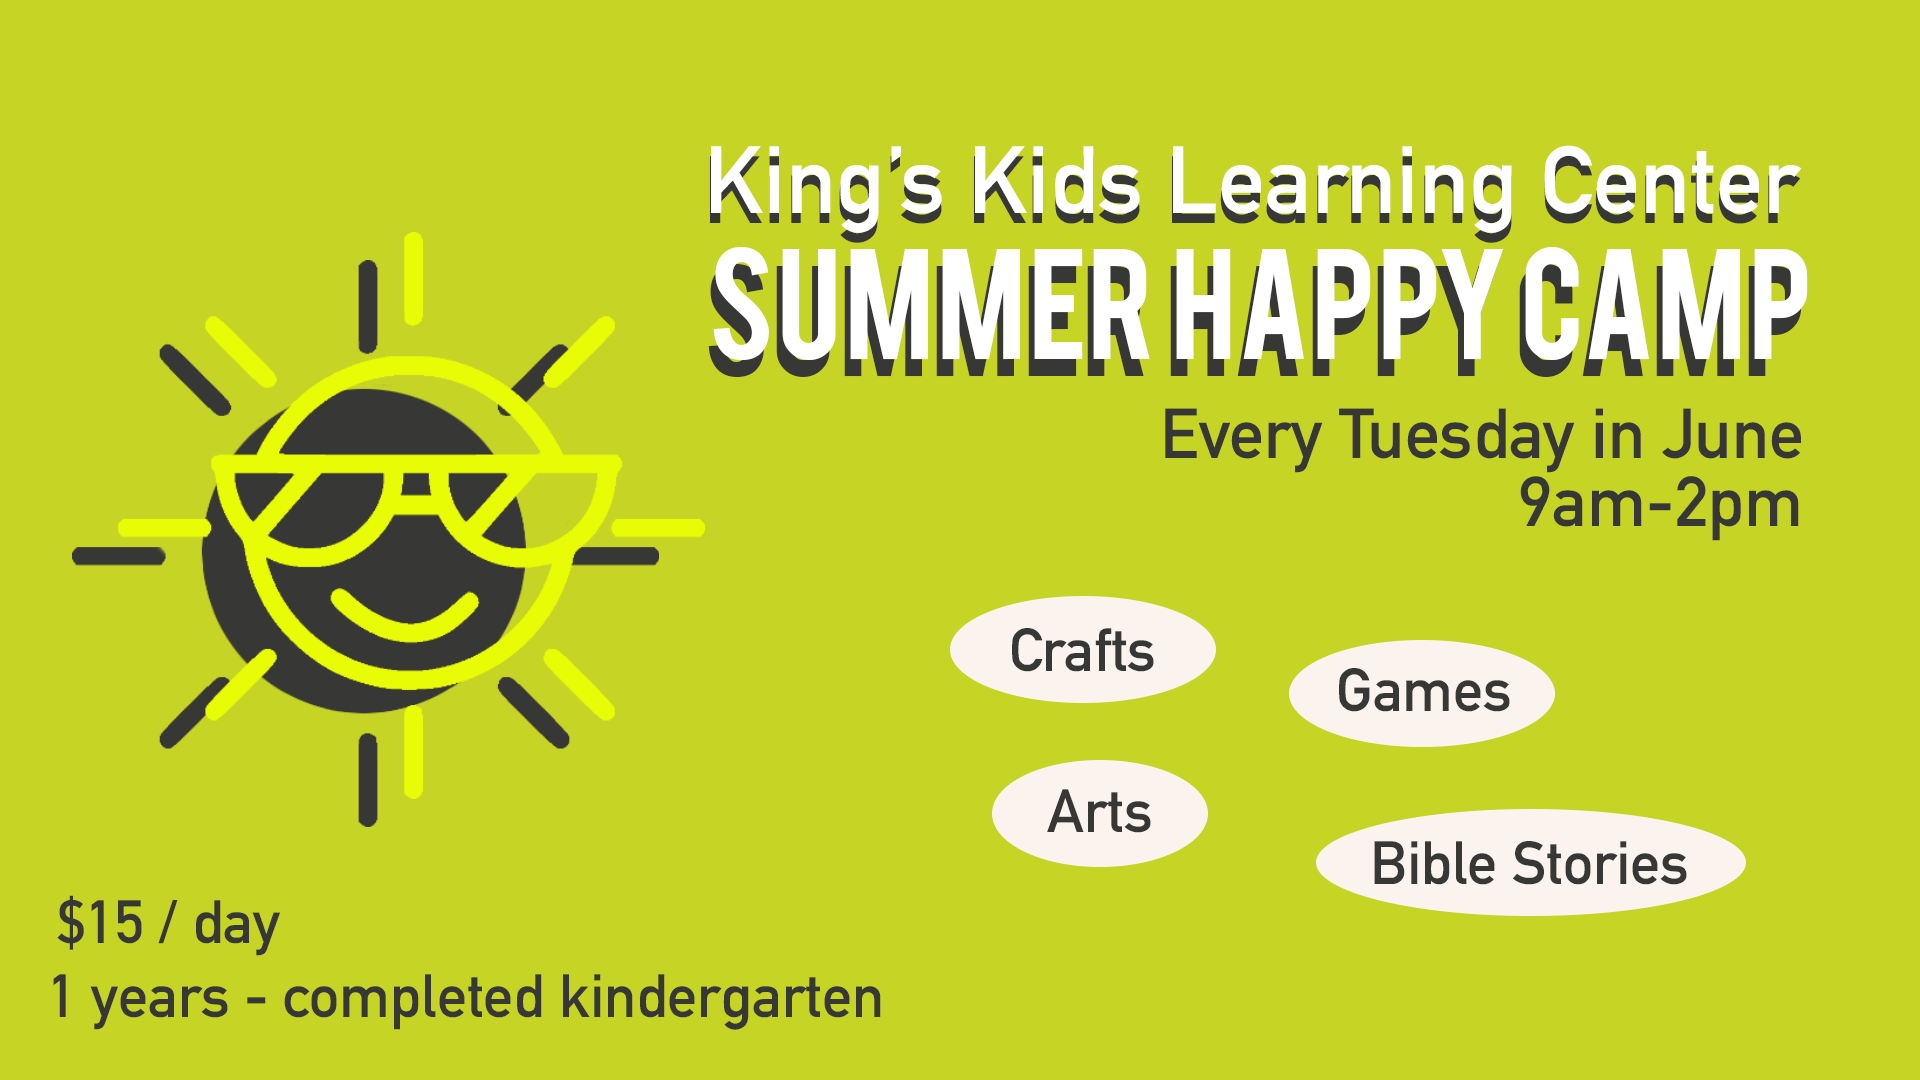 Kings kids summer happy camp 19.png